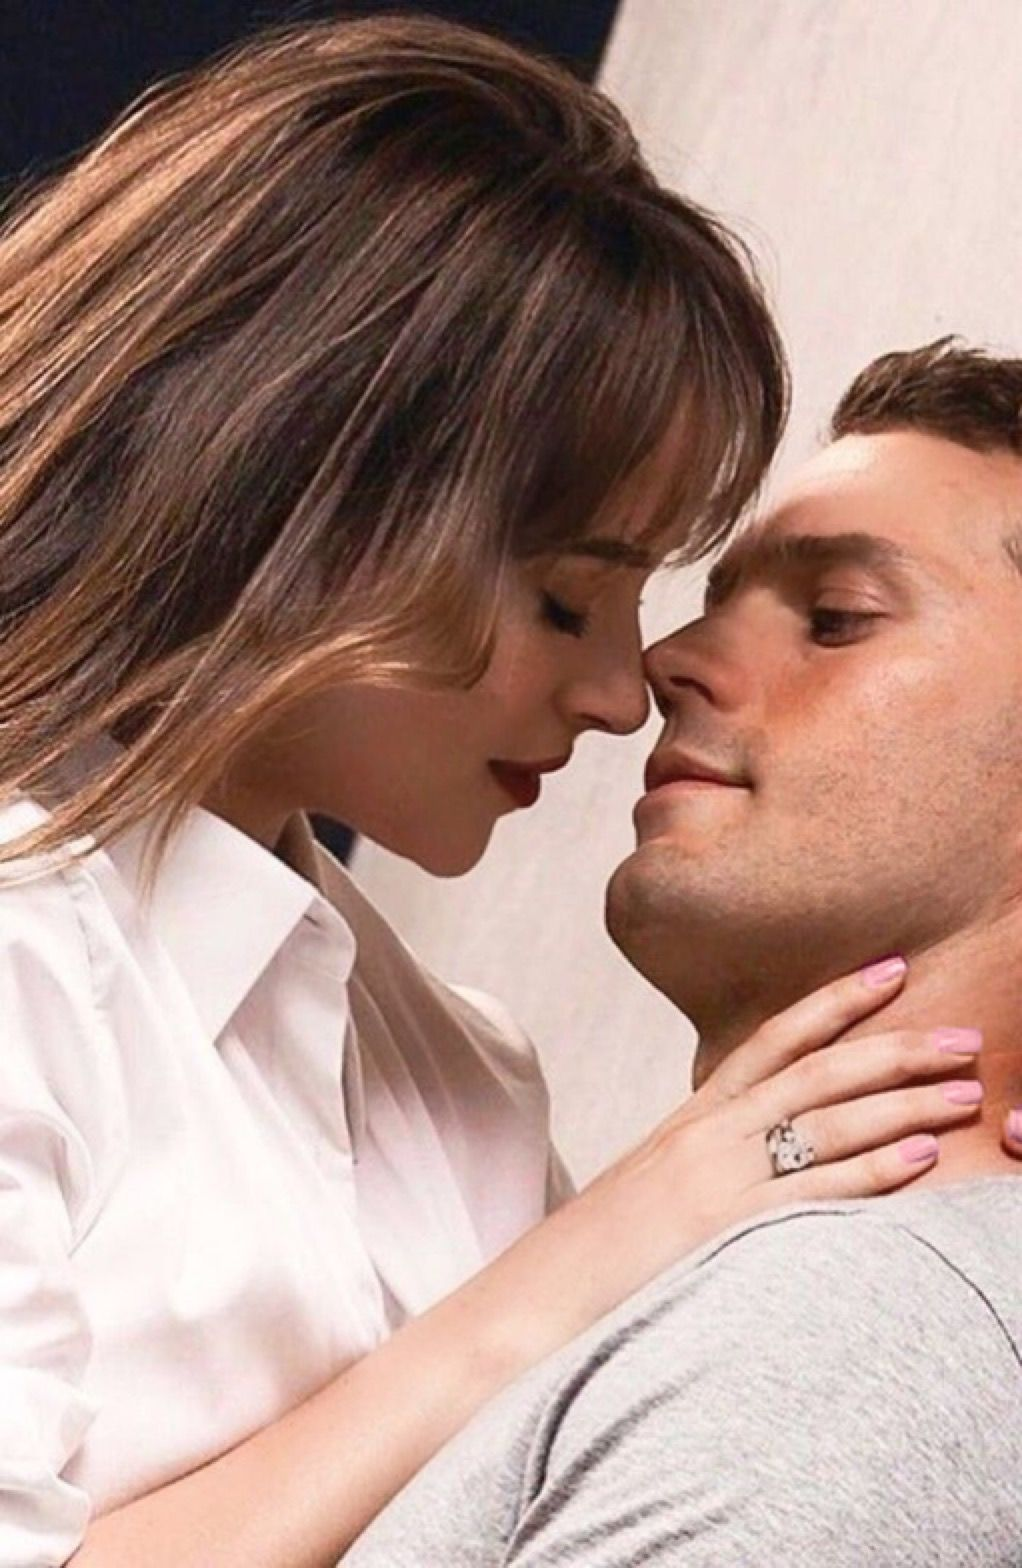 Pin By Nevaeh In Nirvana On Christian Ana Fifty Shades Movie